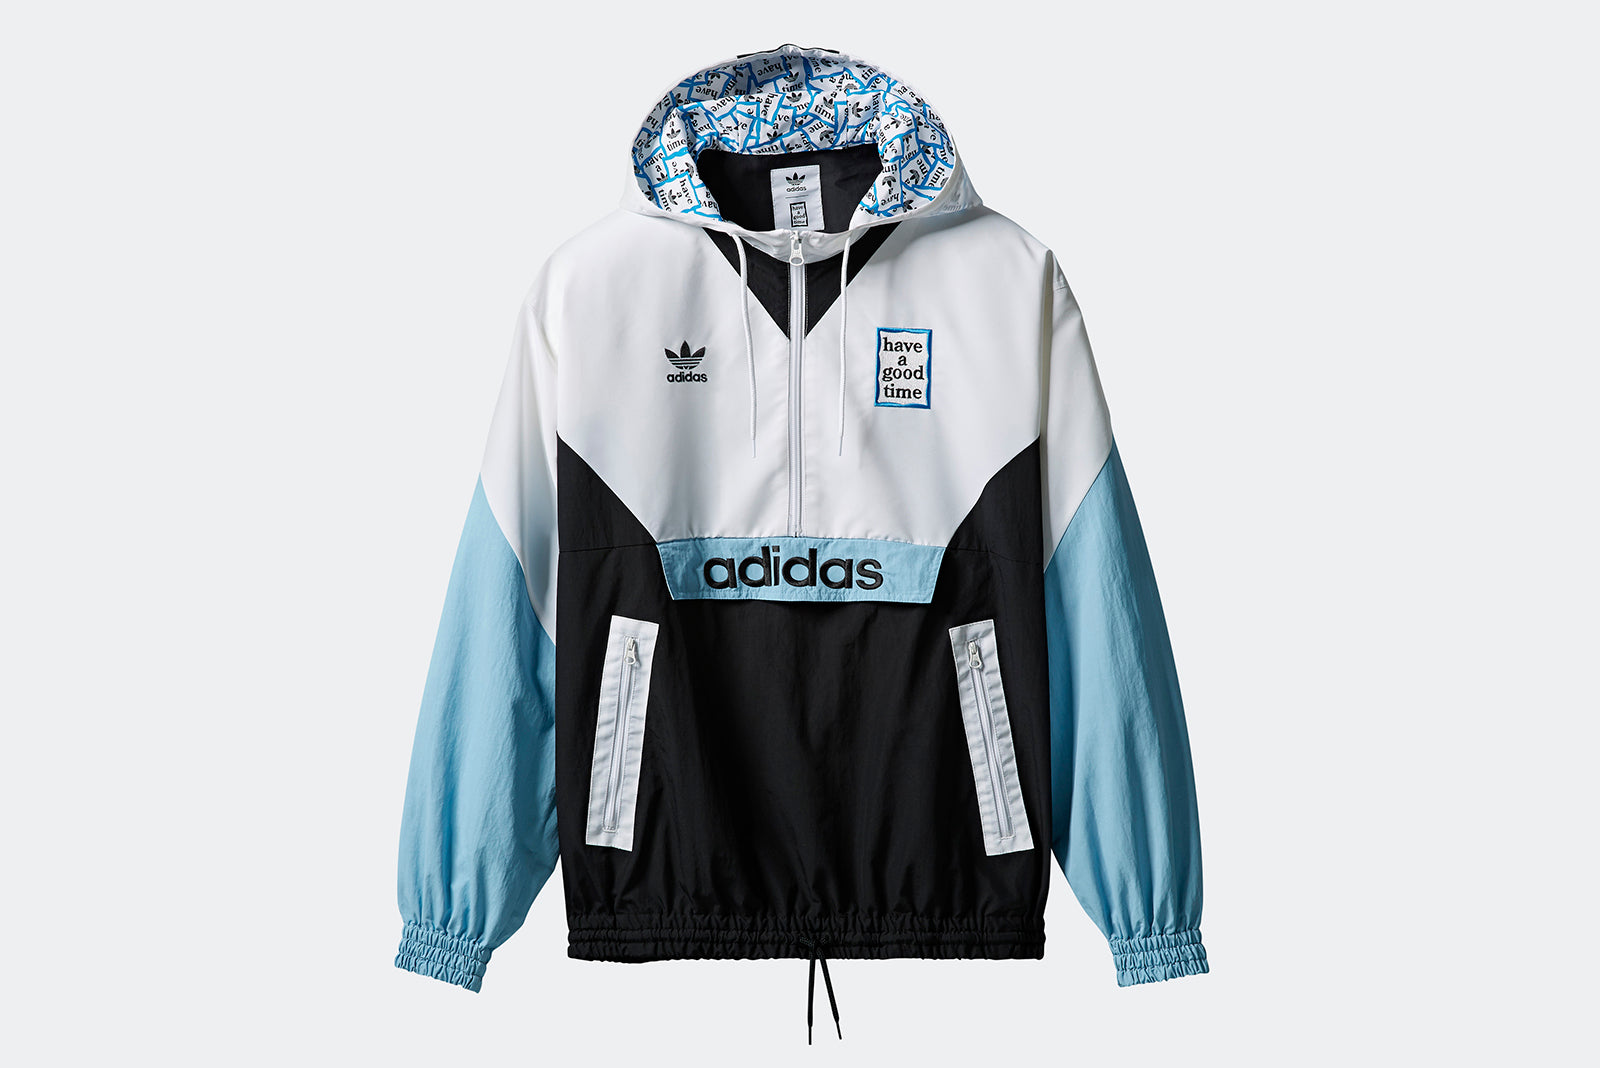 b0531488a3f adidas Originals Pullover Windbreaker x Have A Good Time DZ9235 White /  Black / Clear Blue Price: £179.00. Launch: January 19th